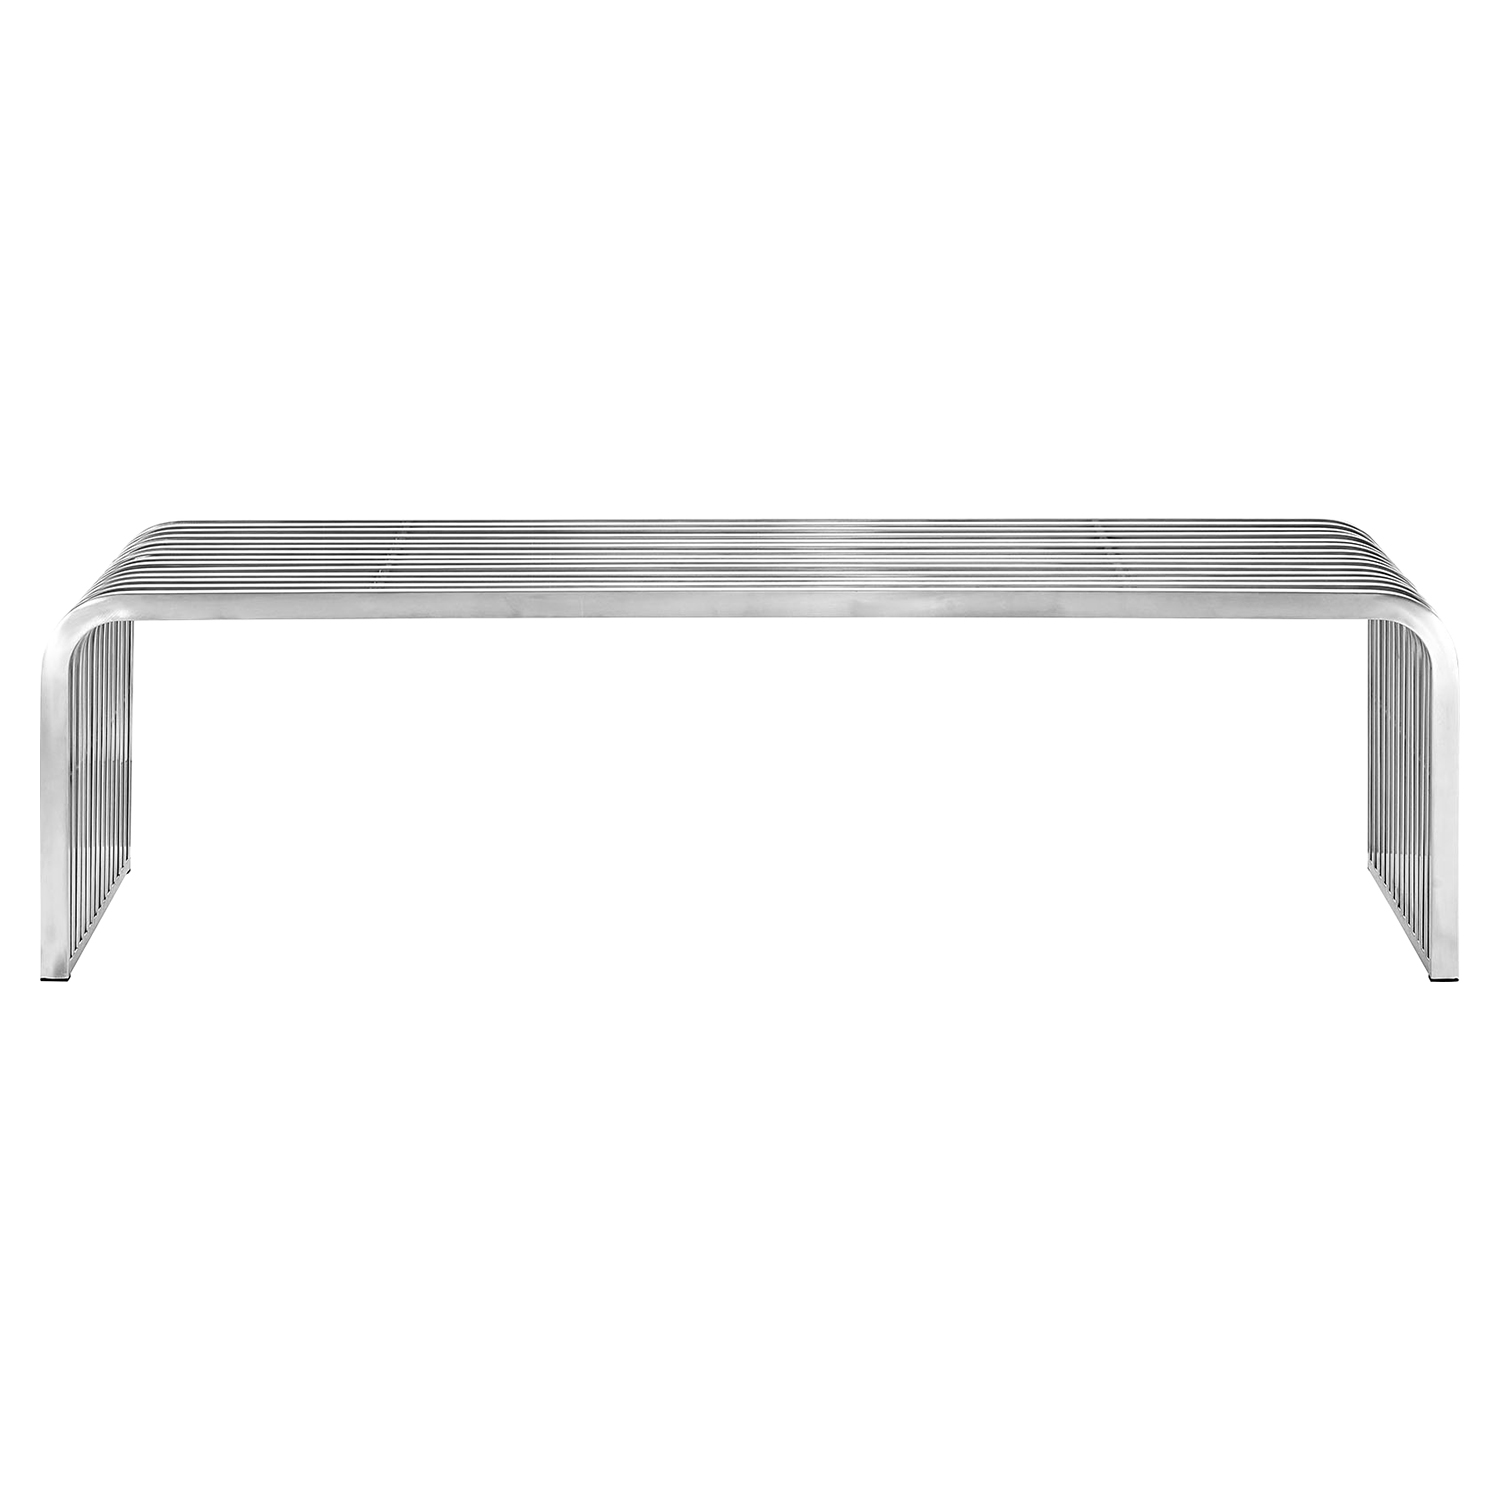 "Pipe 60"" Stainless Steel Bench - EEI-2103-SLV"